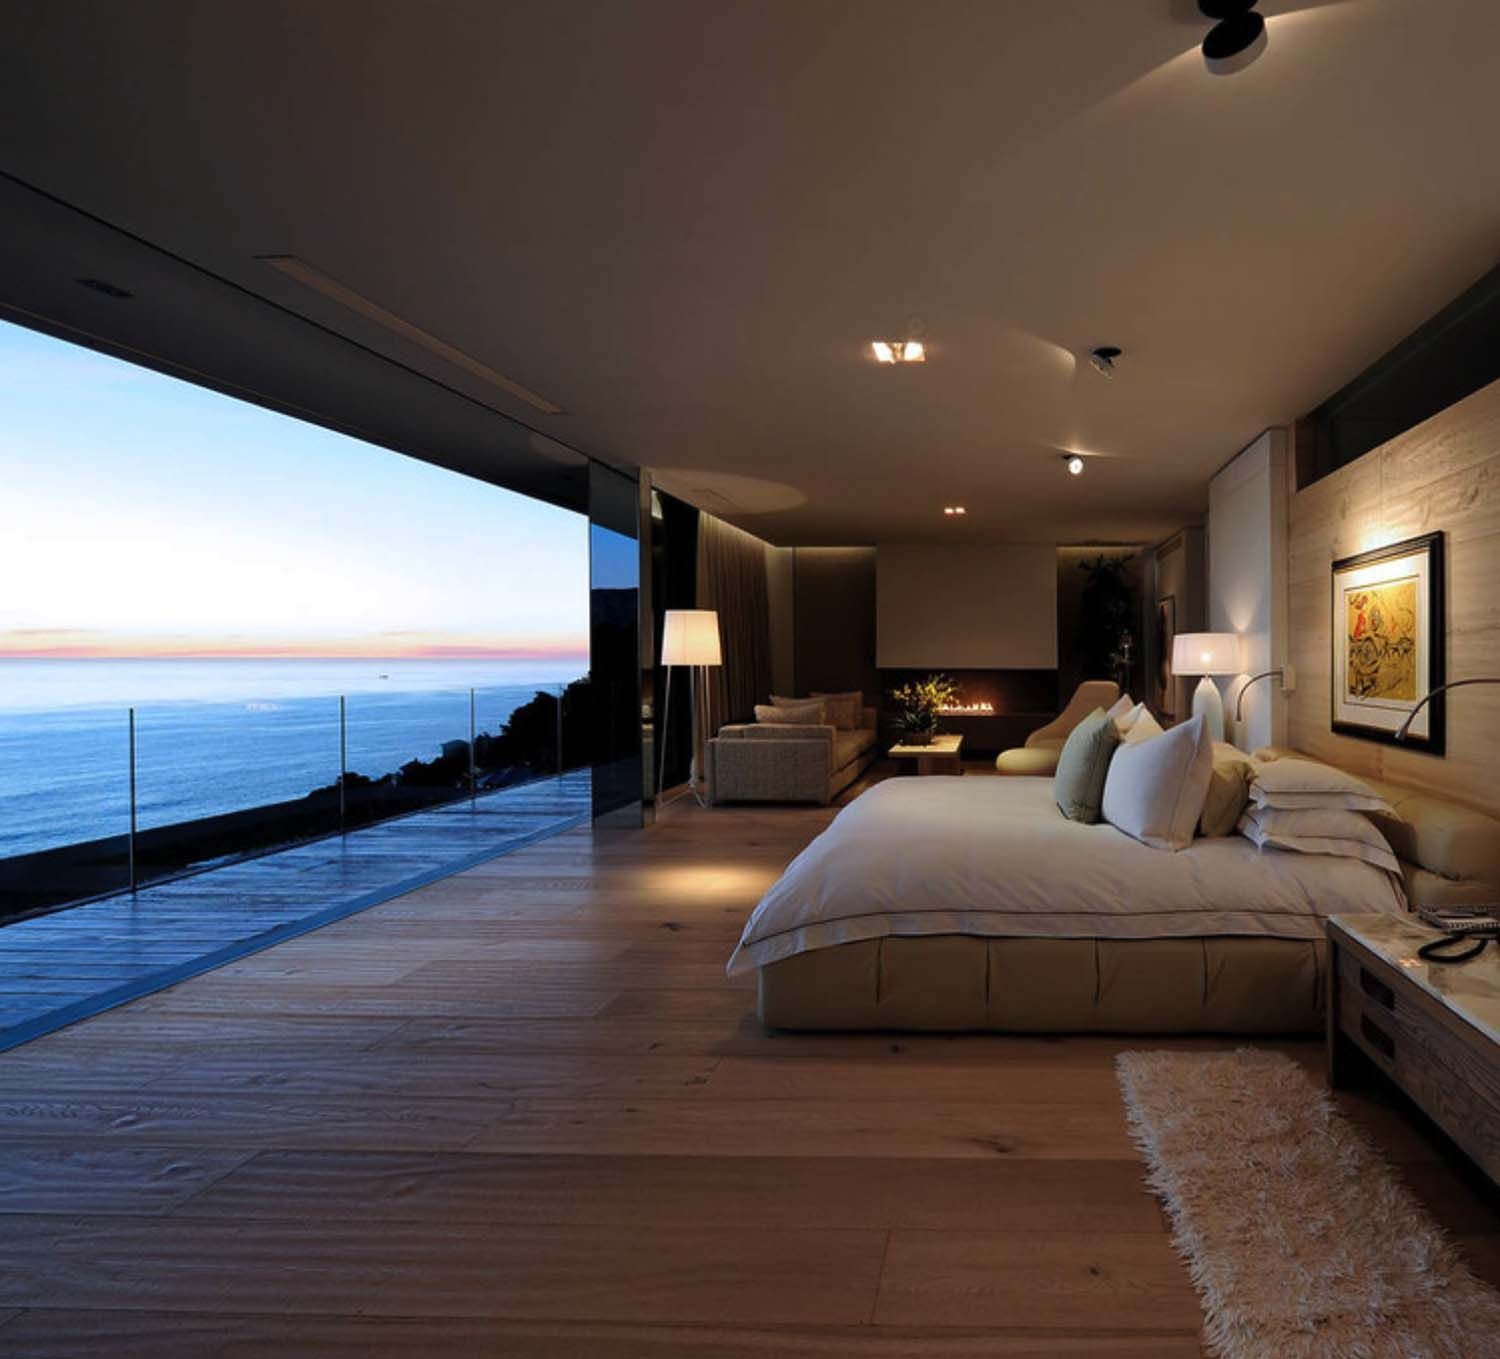 Ocean Bedrooms 33 sun-drenched bedrooms with mesmerizing ocean views | ocean